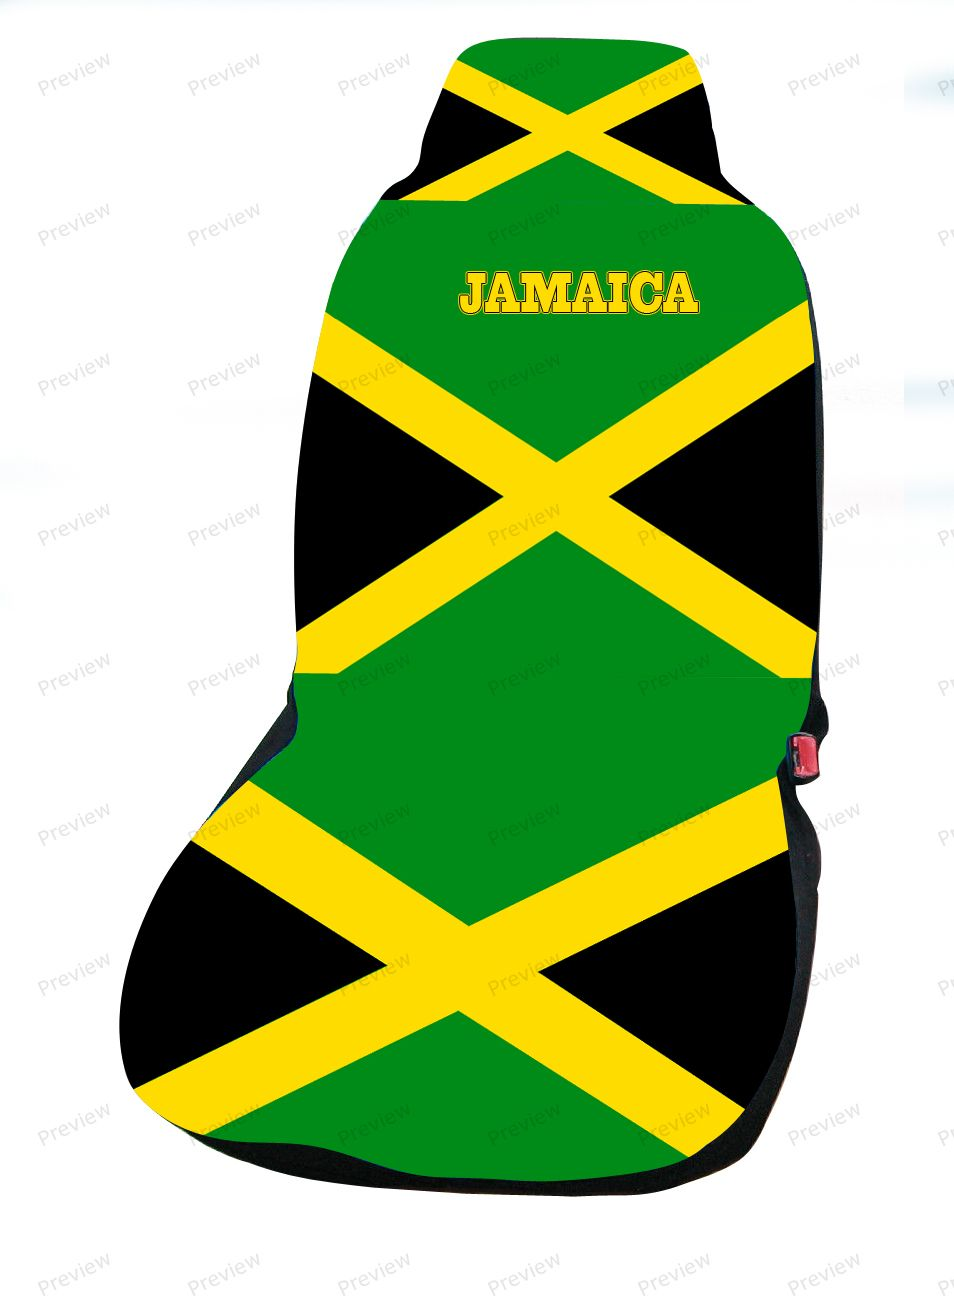 Jamaica Car Cover Seats Http Www Carcoverseat Net Jamaica 20car 20cover 20seat 20flag Php Jamaica Colors Rasta Jamaica